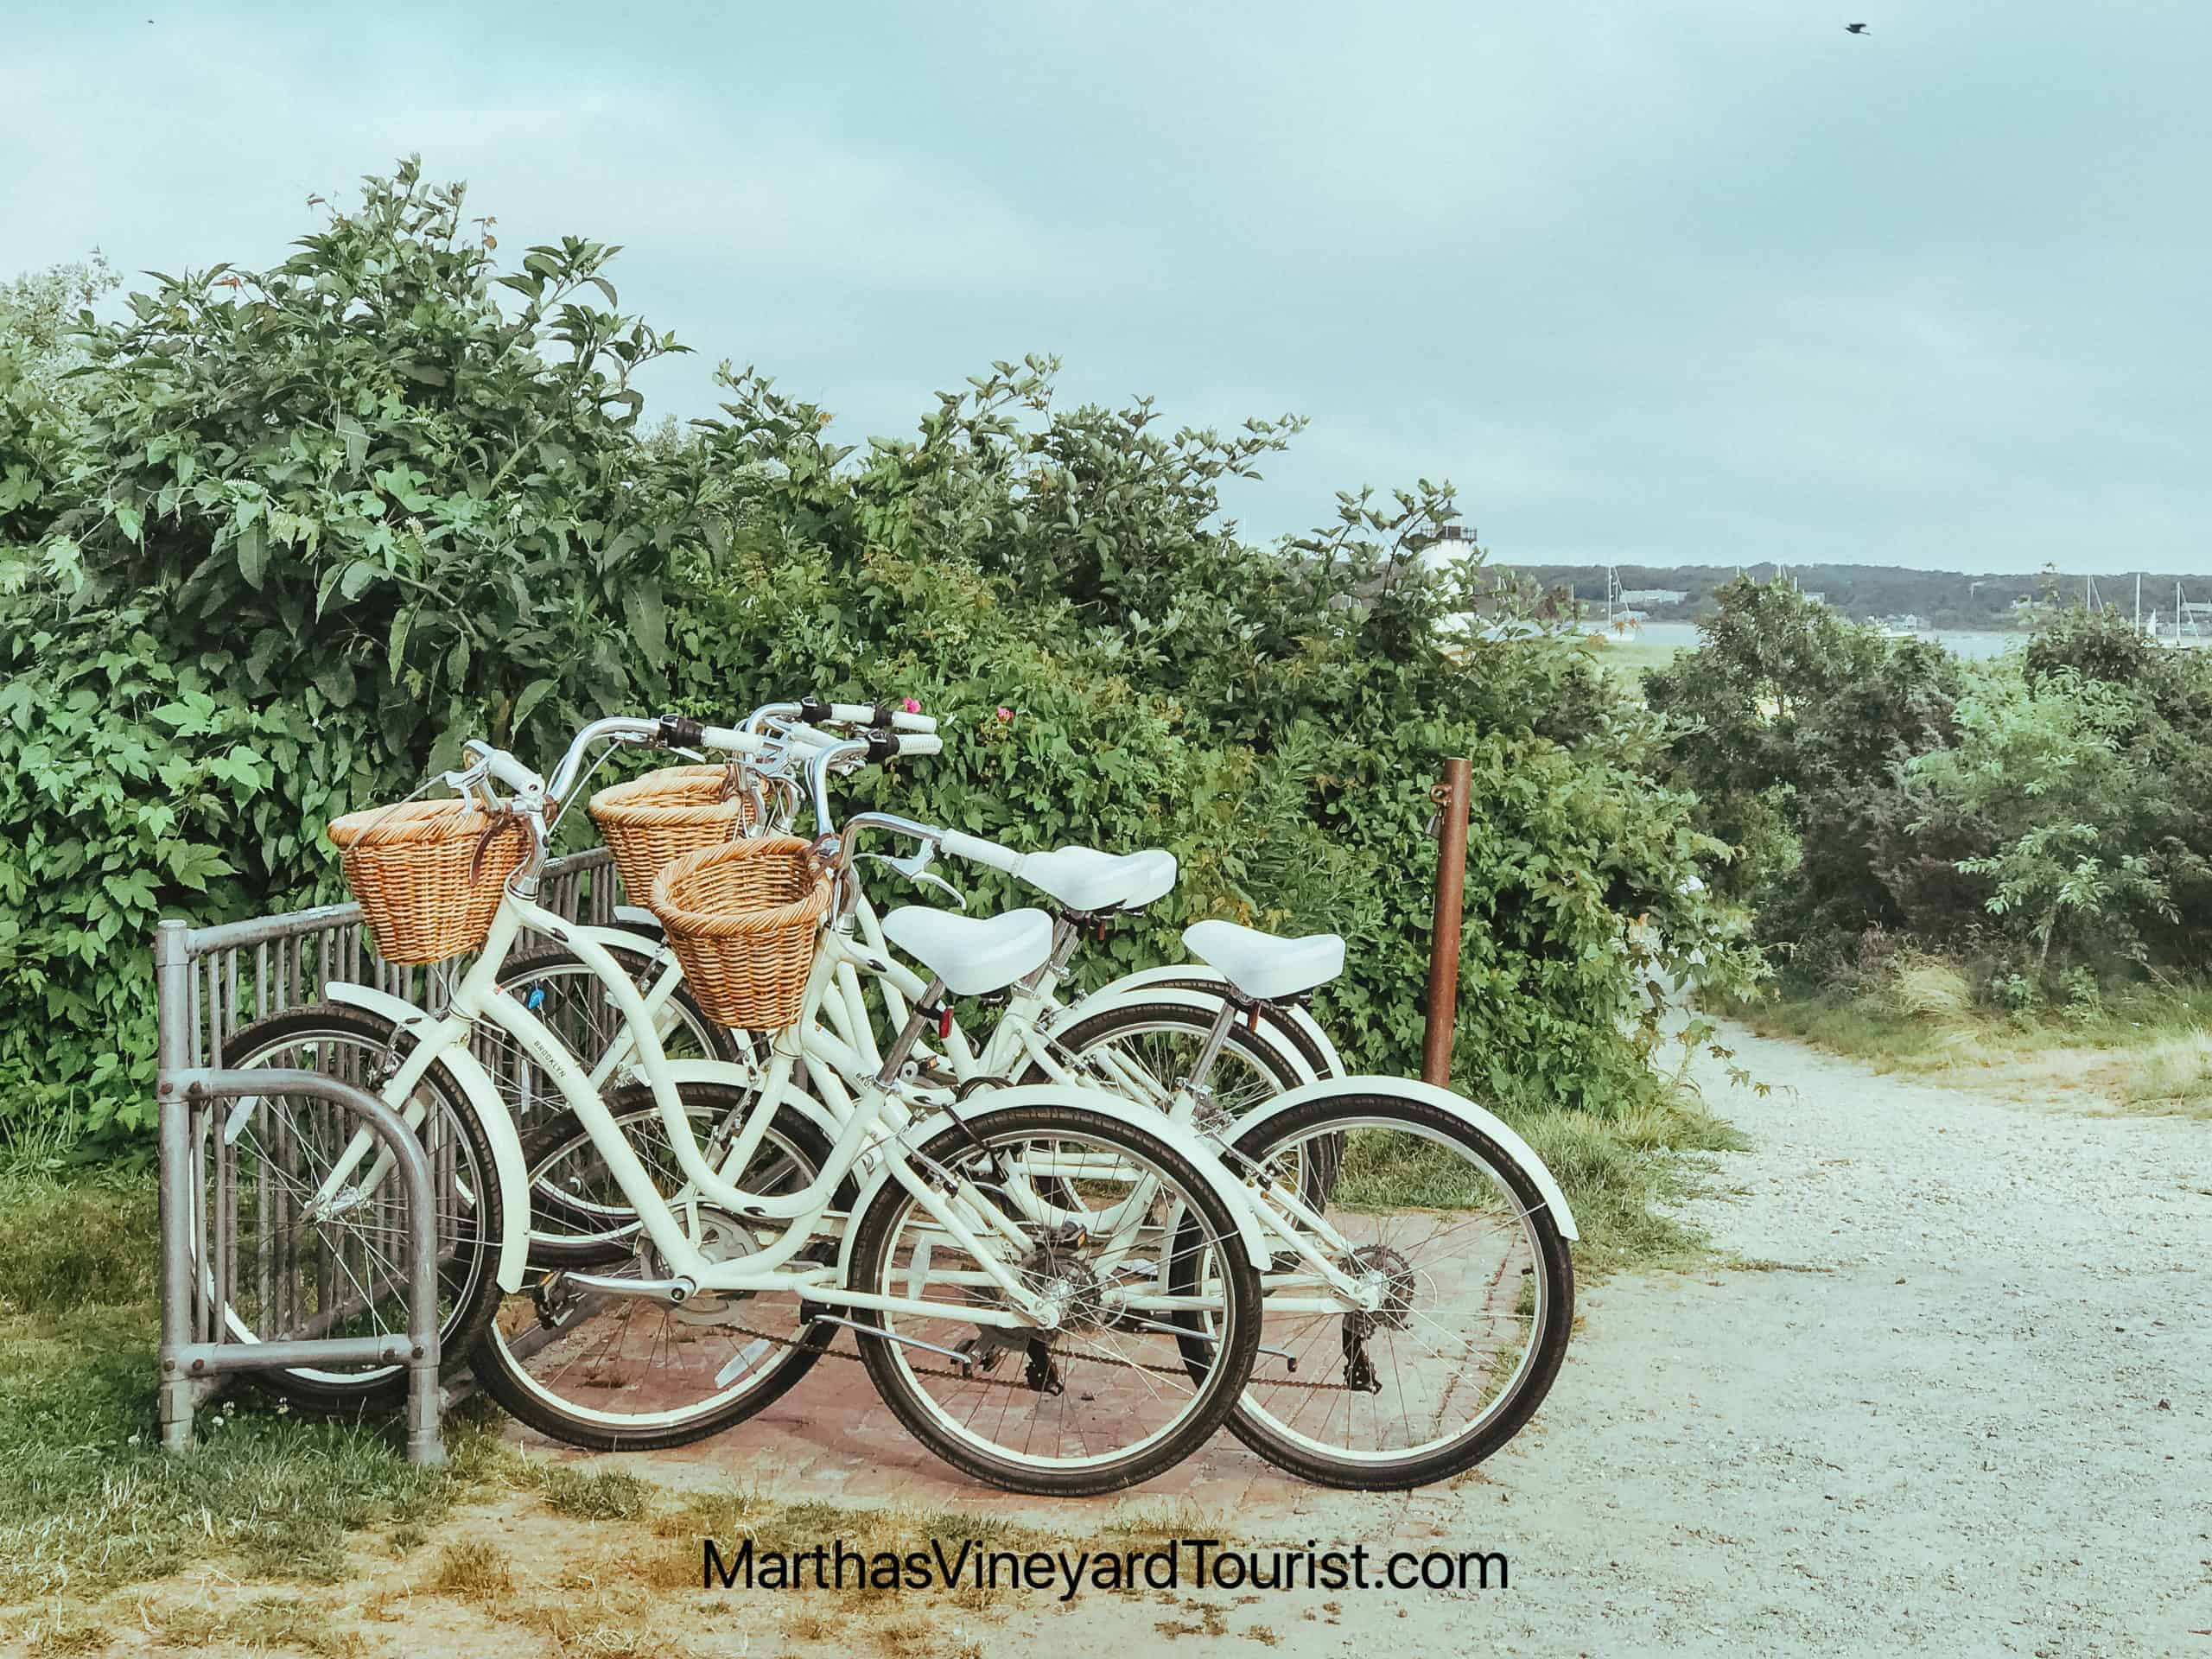 white cycles with baskets by the beach